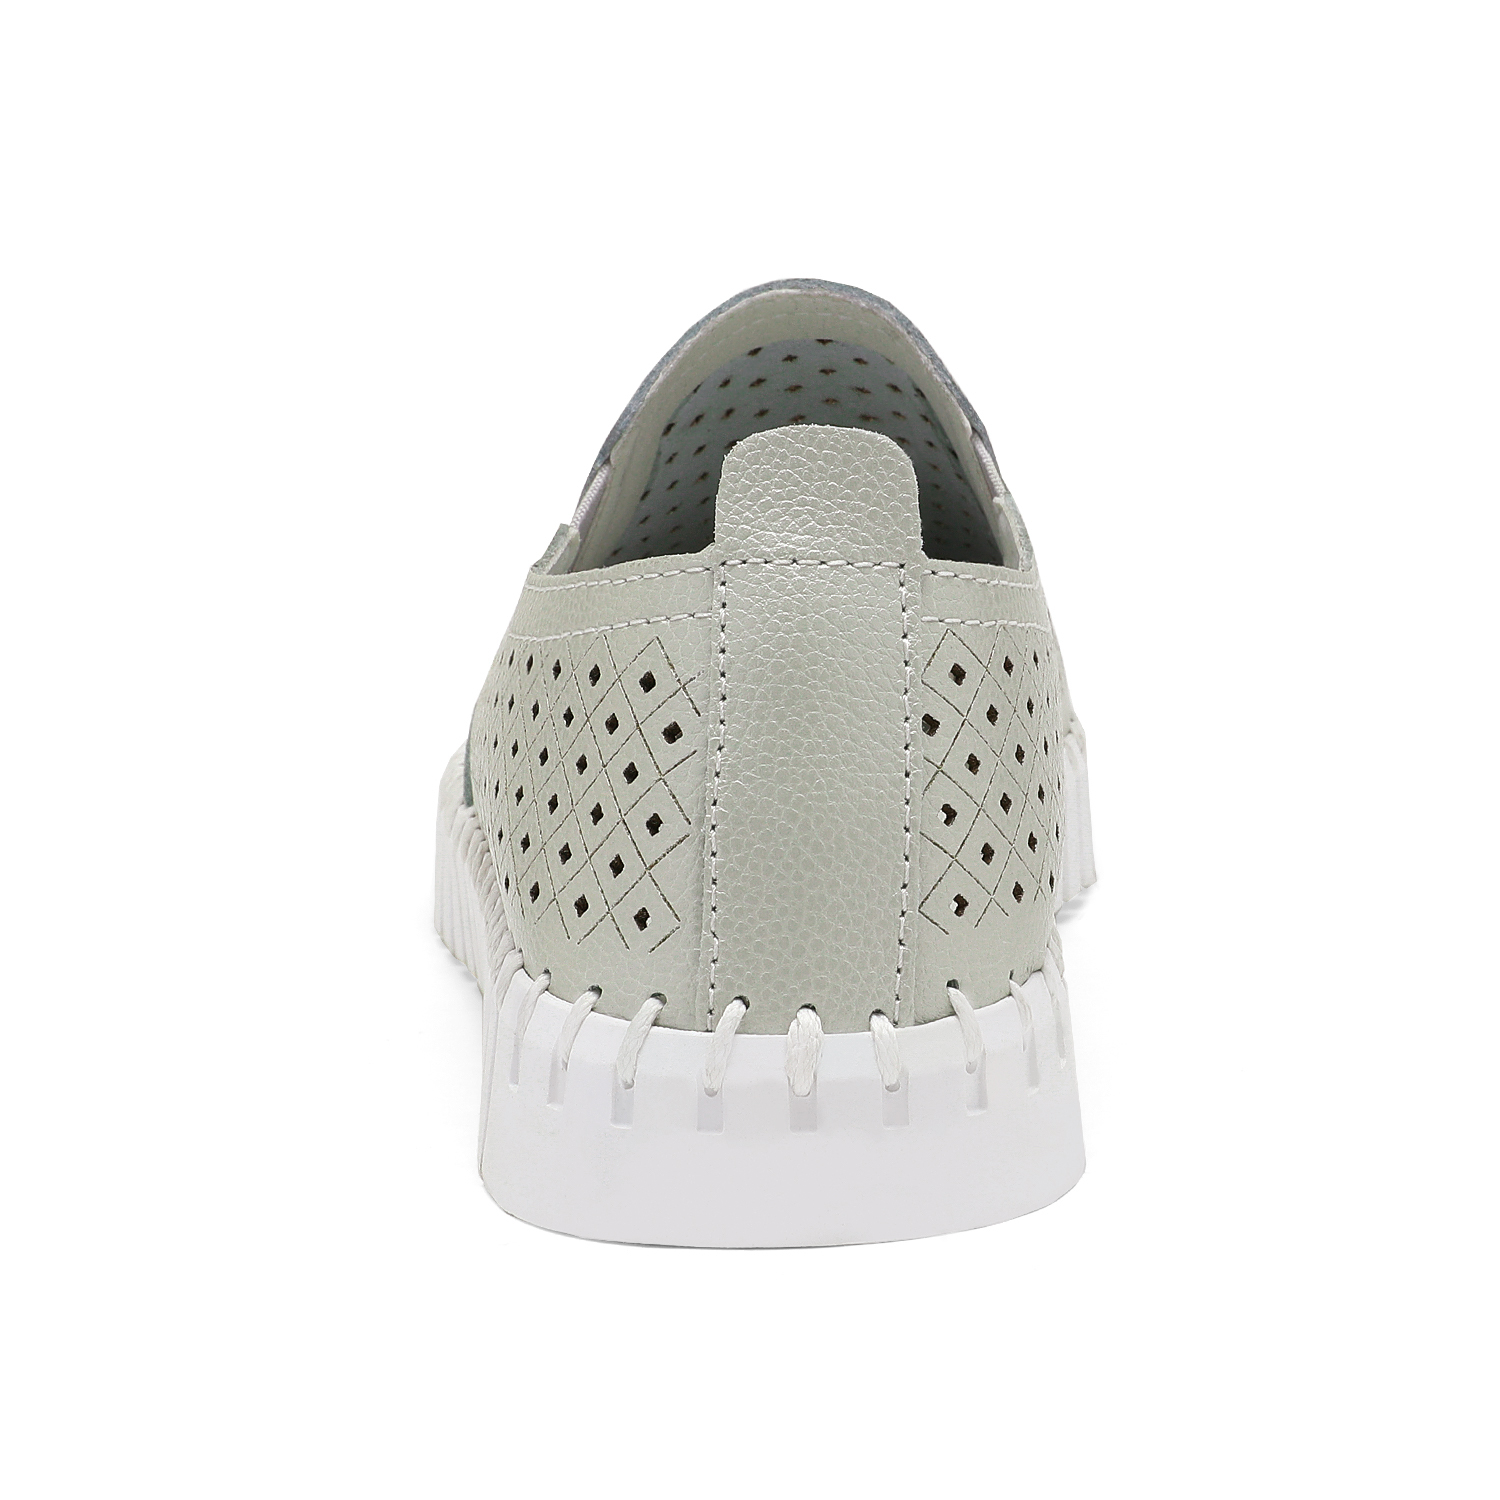 DREAM-PAIRS-Women-s-Breathable-Sneaker-Slip-On-Loafers-Comfortable-Flat-Shoes thumbnail 20